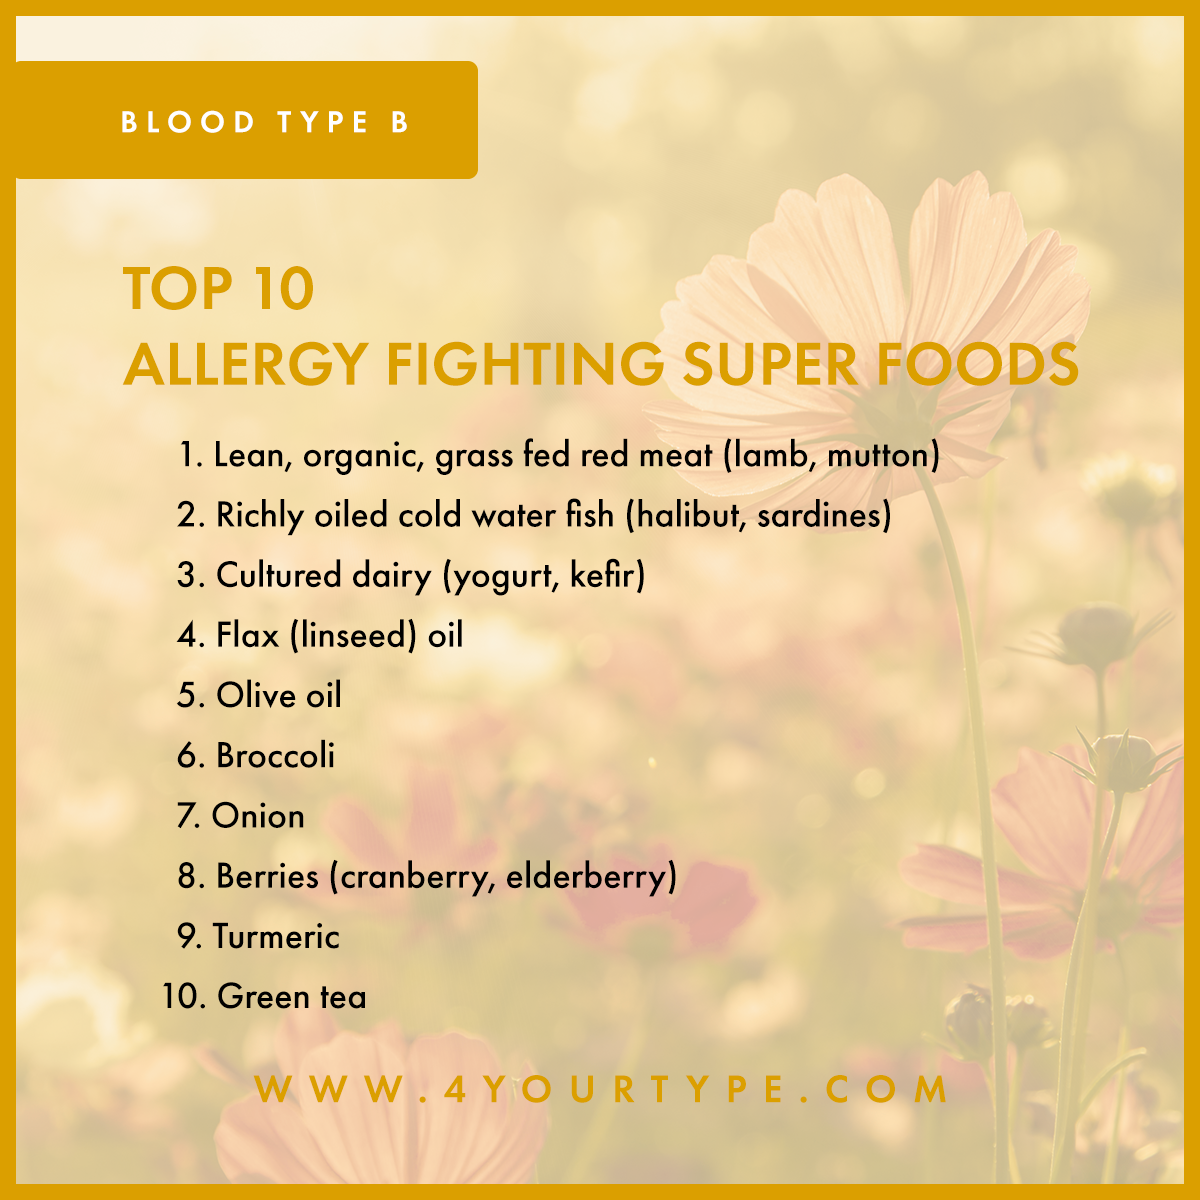 Blood Type B - Allergy Fighting Foods